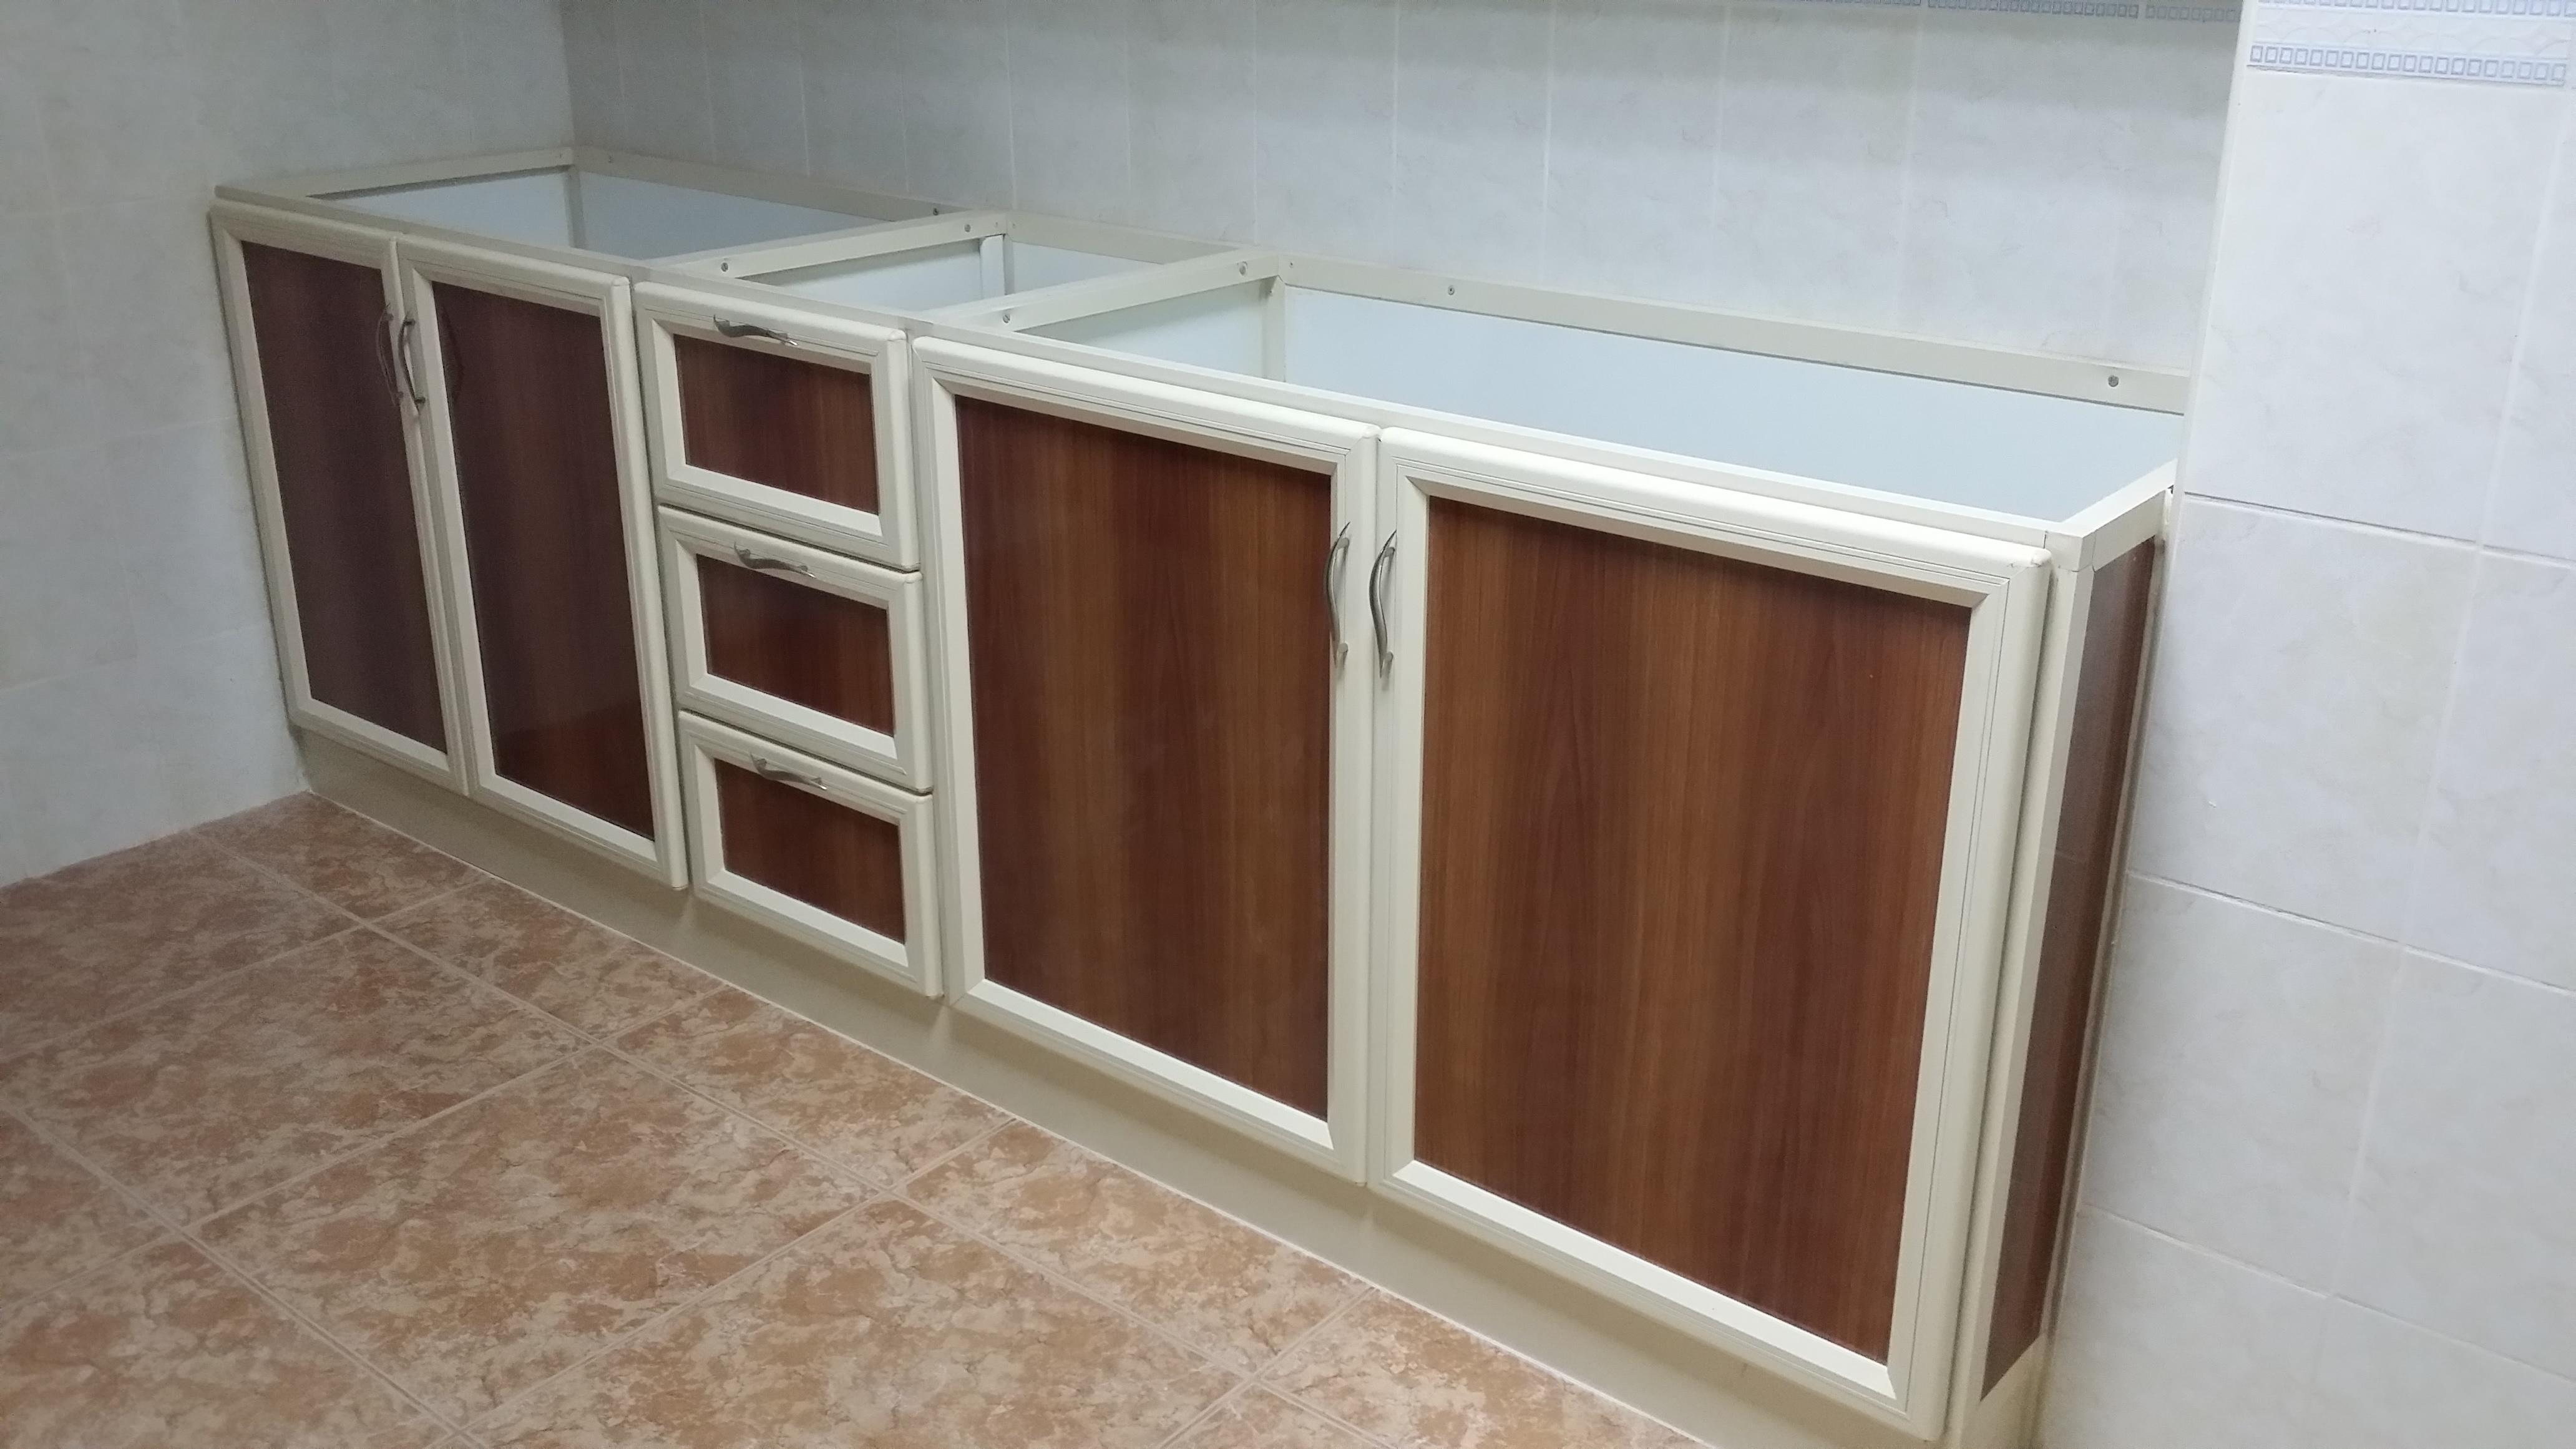 Cabinet for work 91